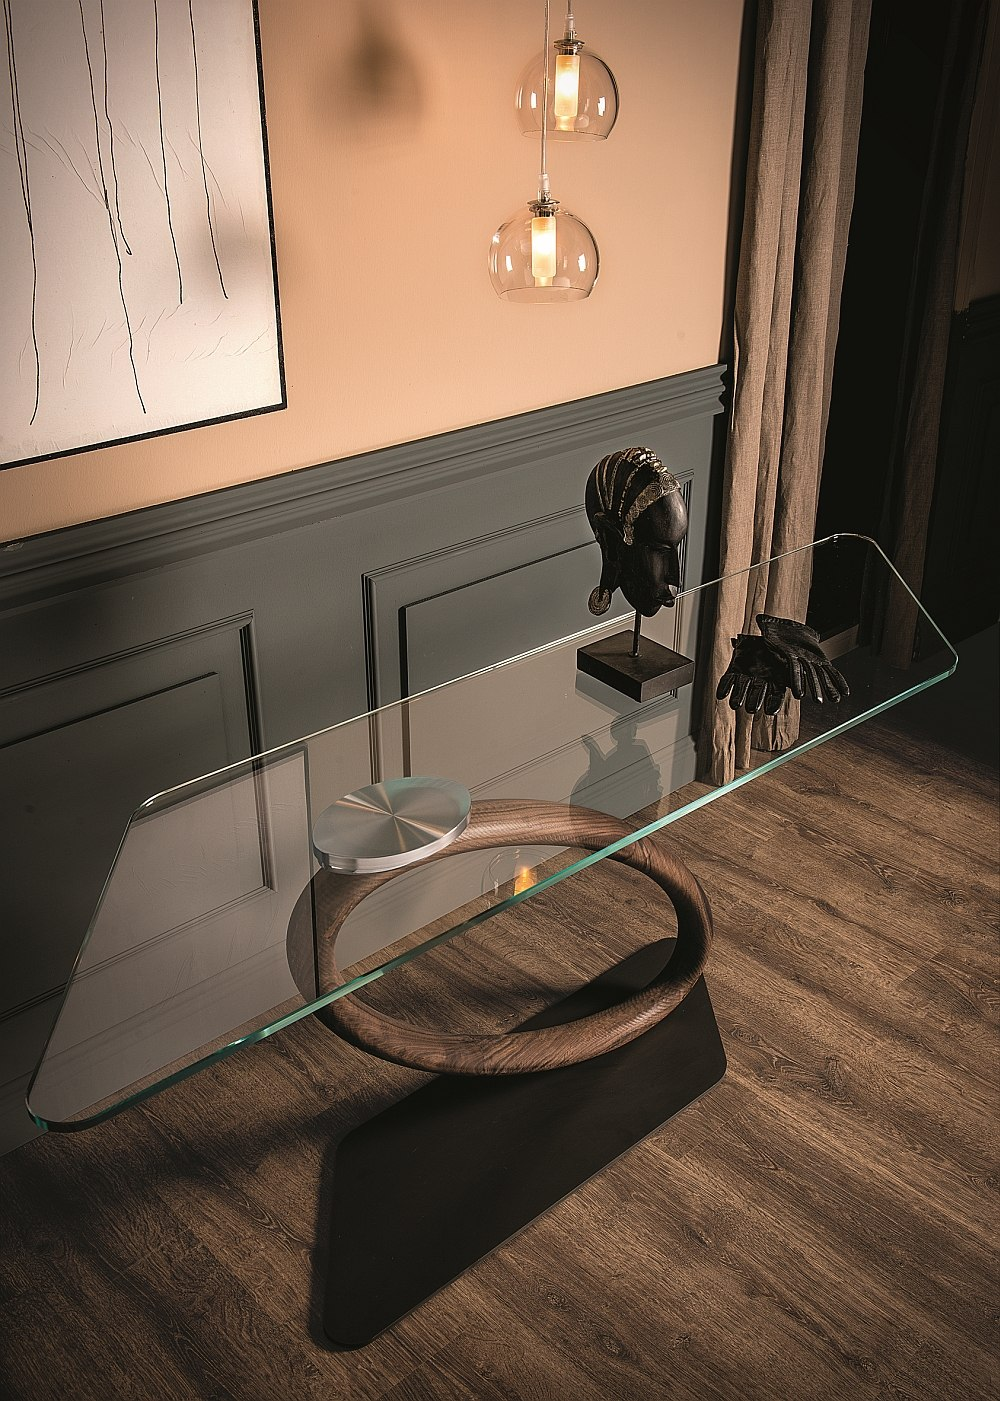 Brilliant console design gives your home a modern minimal style